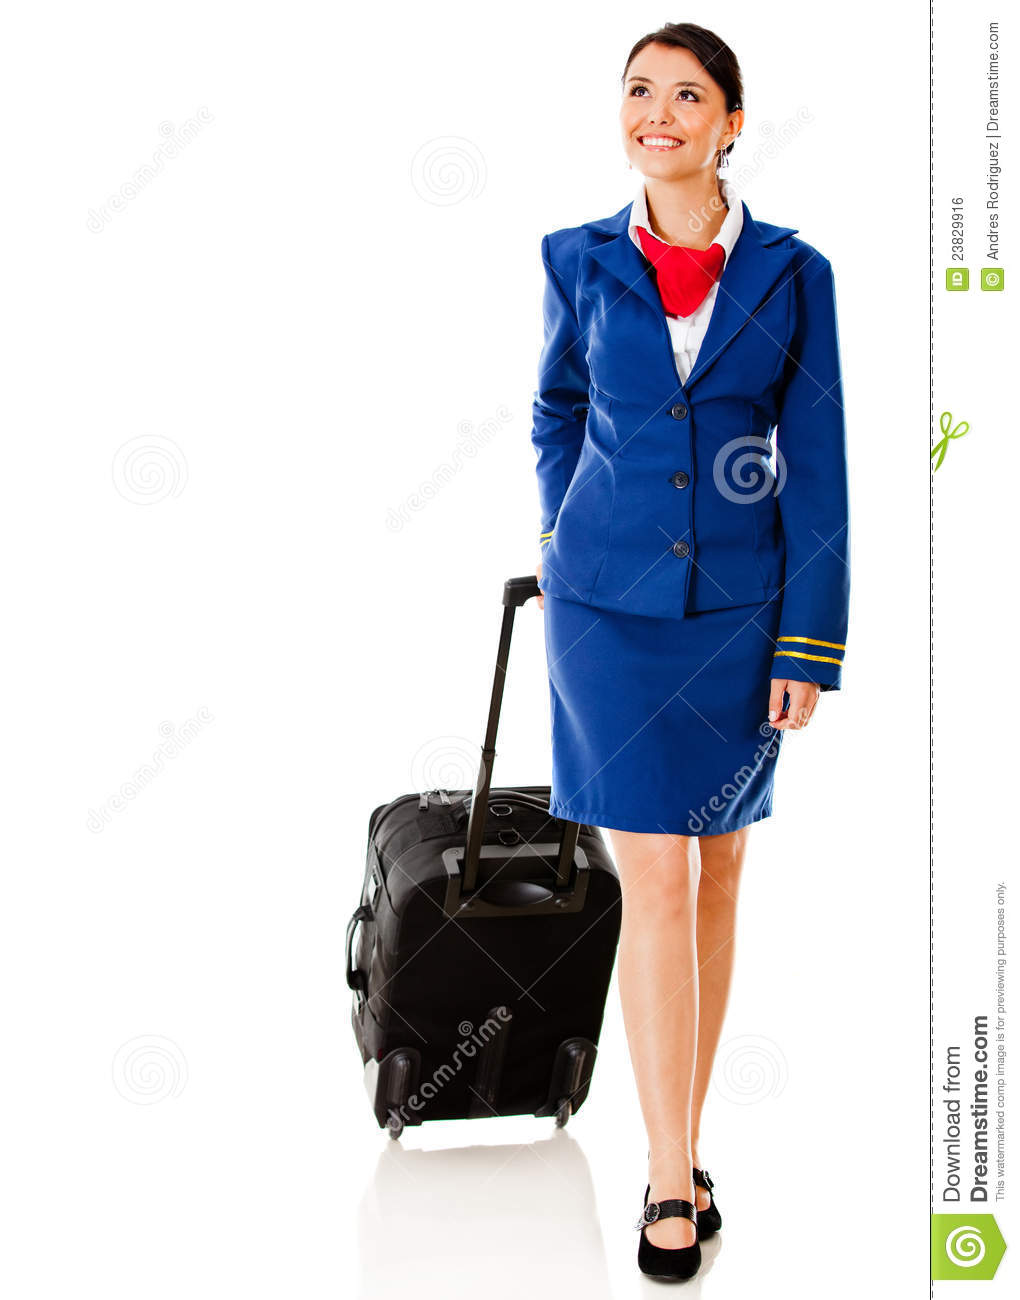 Free Airport Clipart